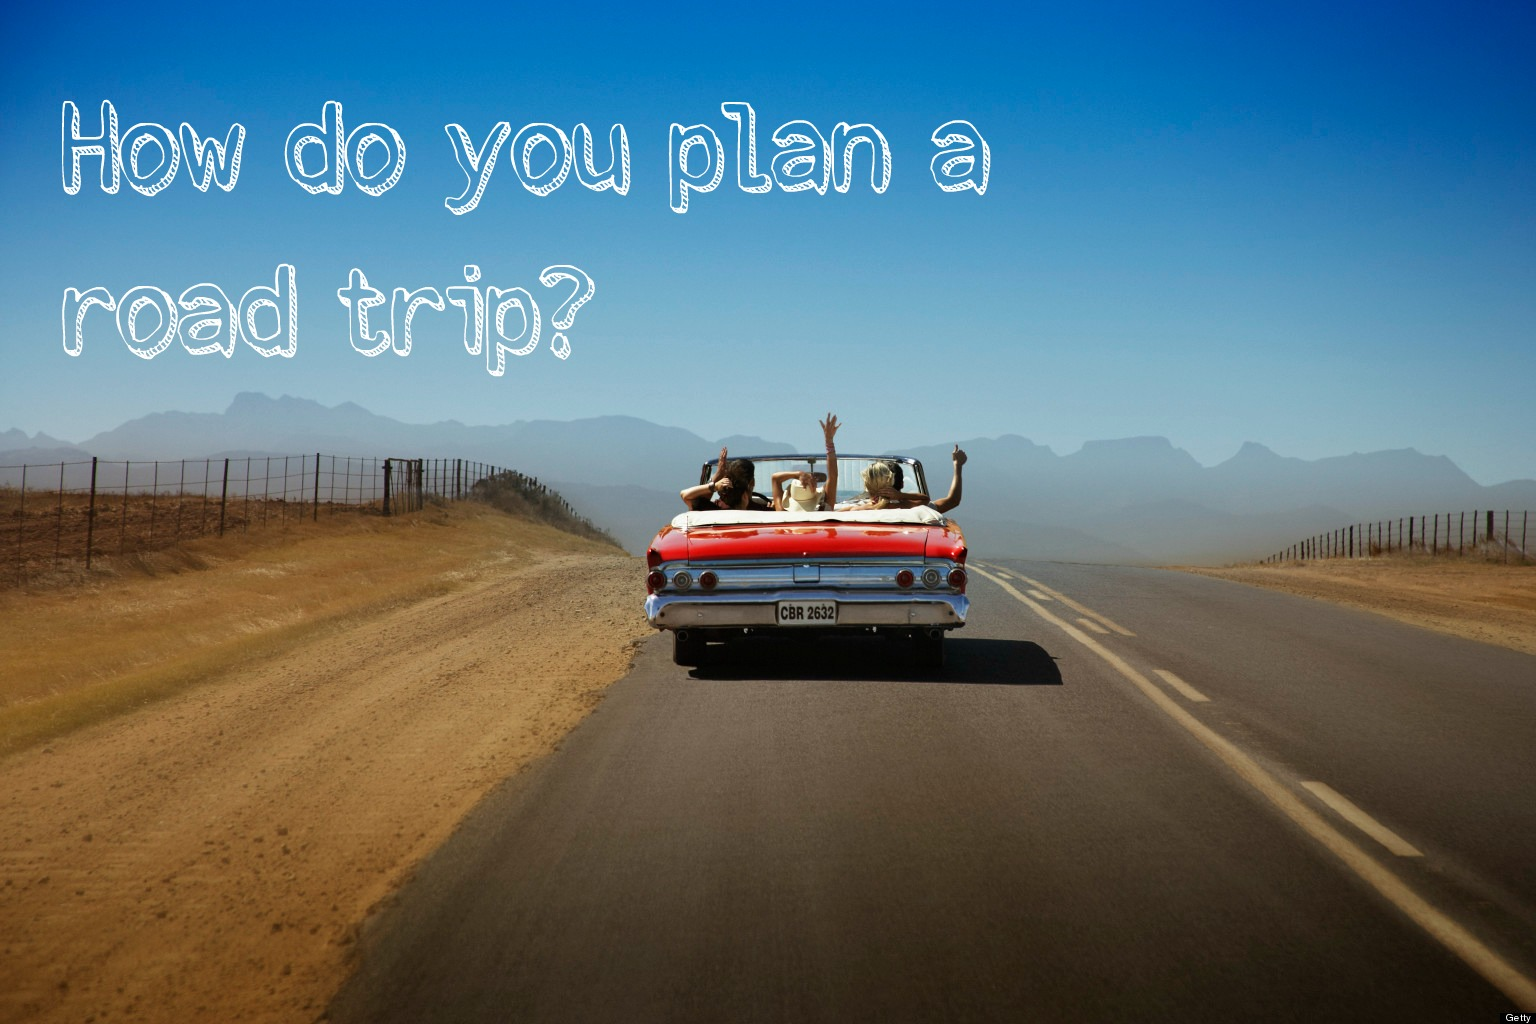 How Do You Plan Your Road Trips?